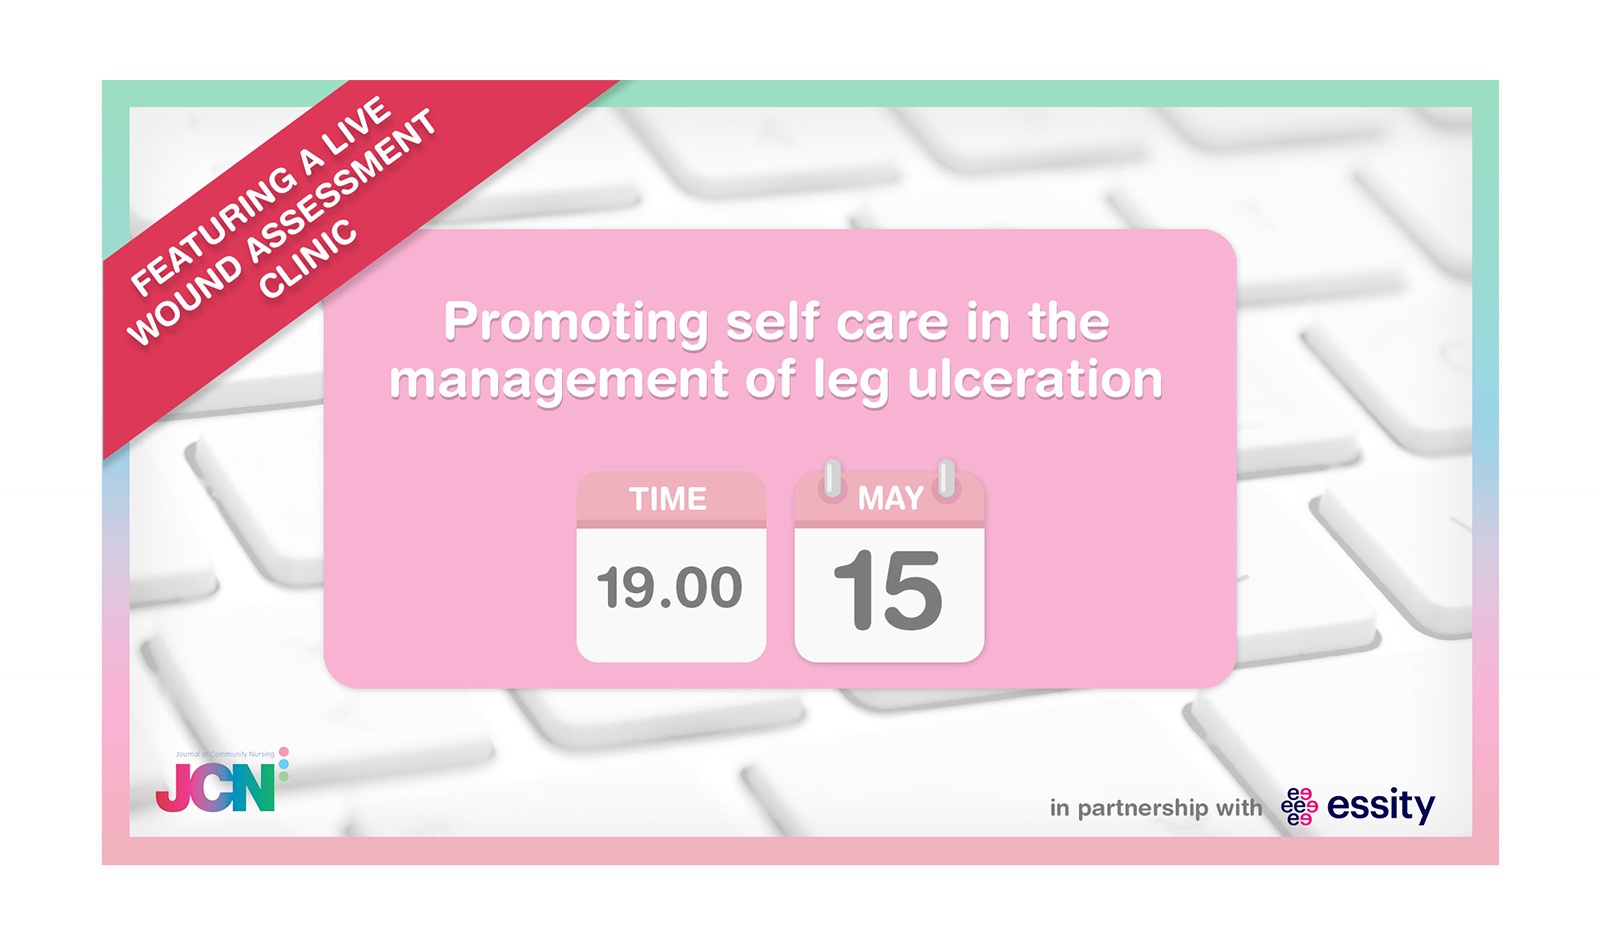 Facebook Live: Promoting self care in the management of leg ulceration